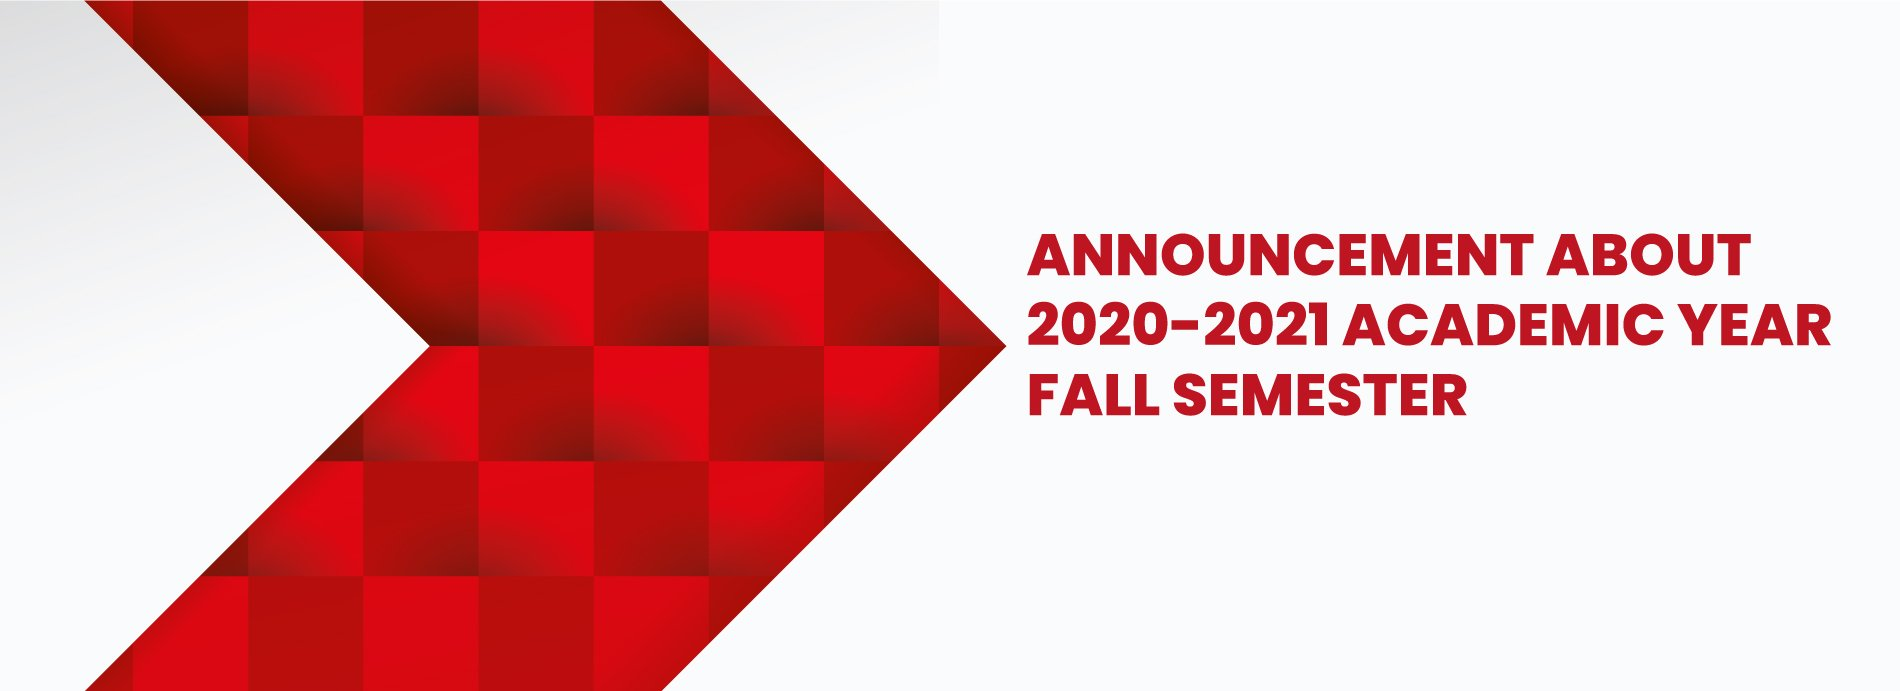 ANNOUNCEMENT ABOUT 2020-2021 ACADEMIC YEAR FALL SEMESTER